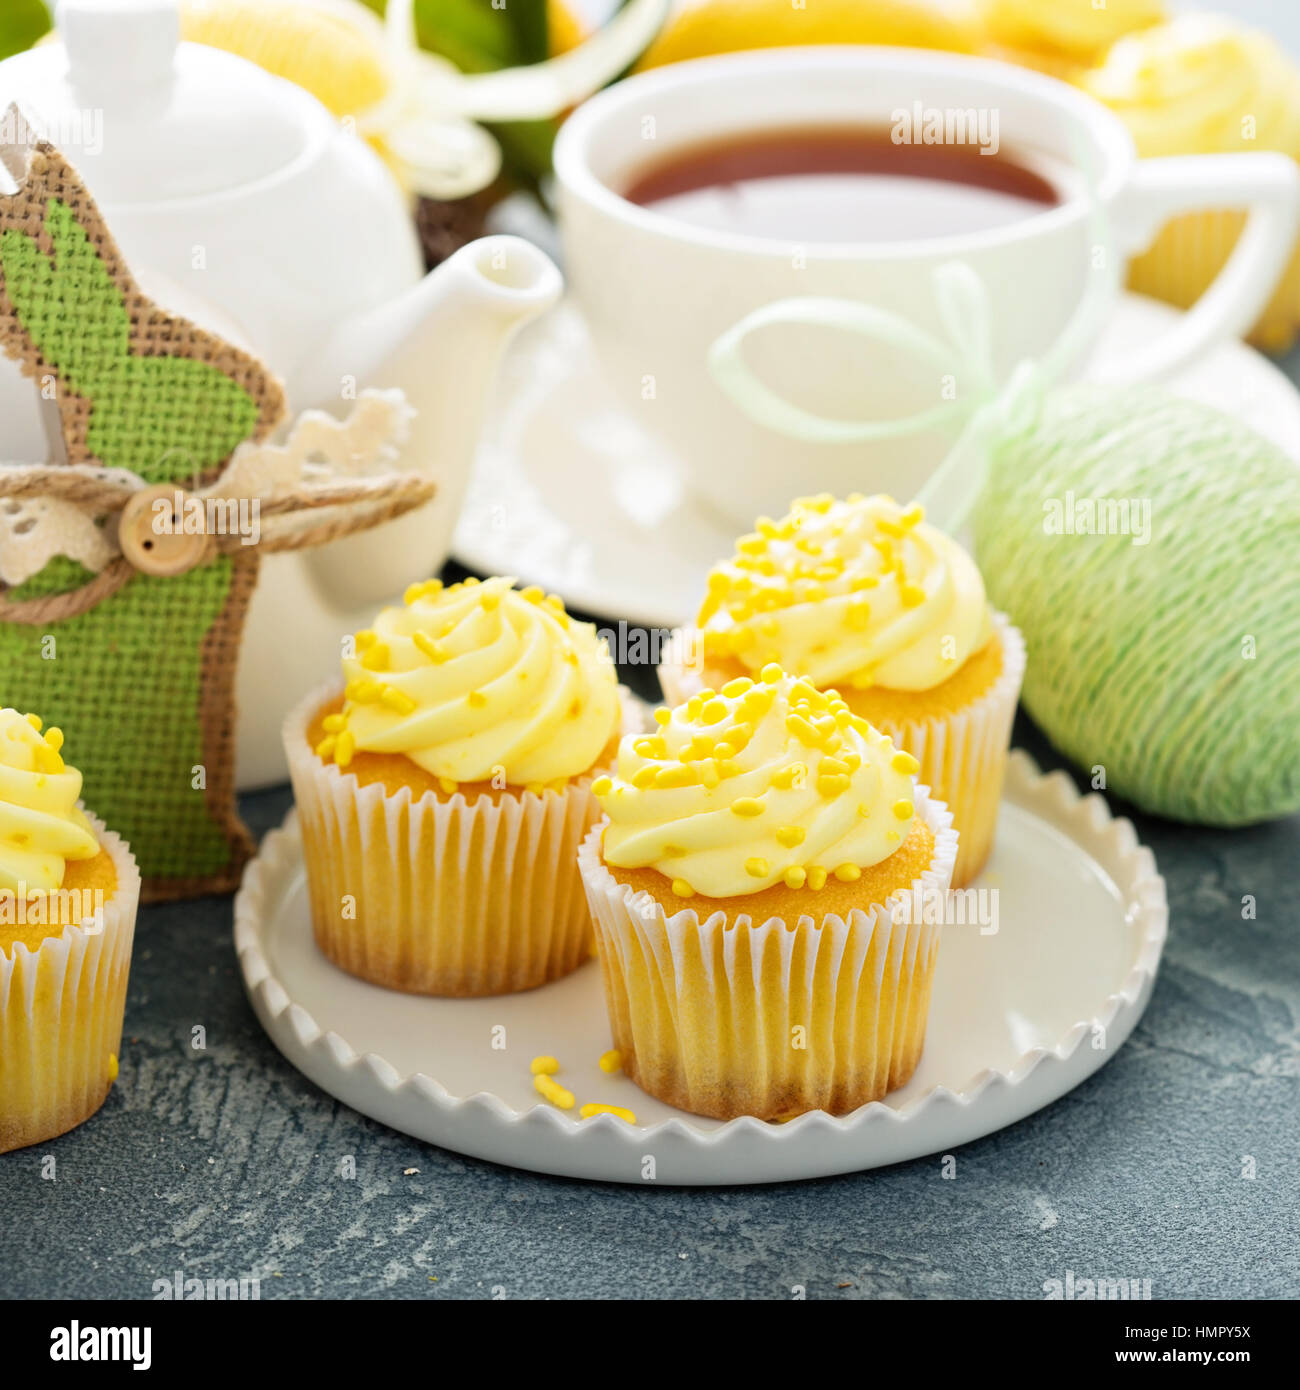 Lemon cupcakes with yellow frosting for Easter - Stock Image